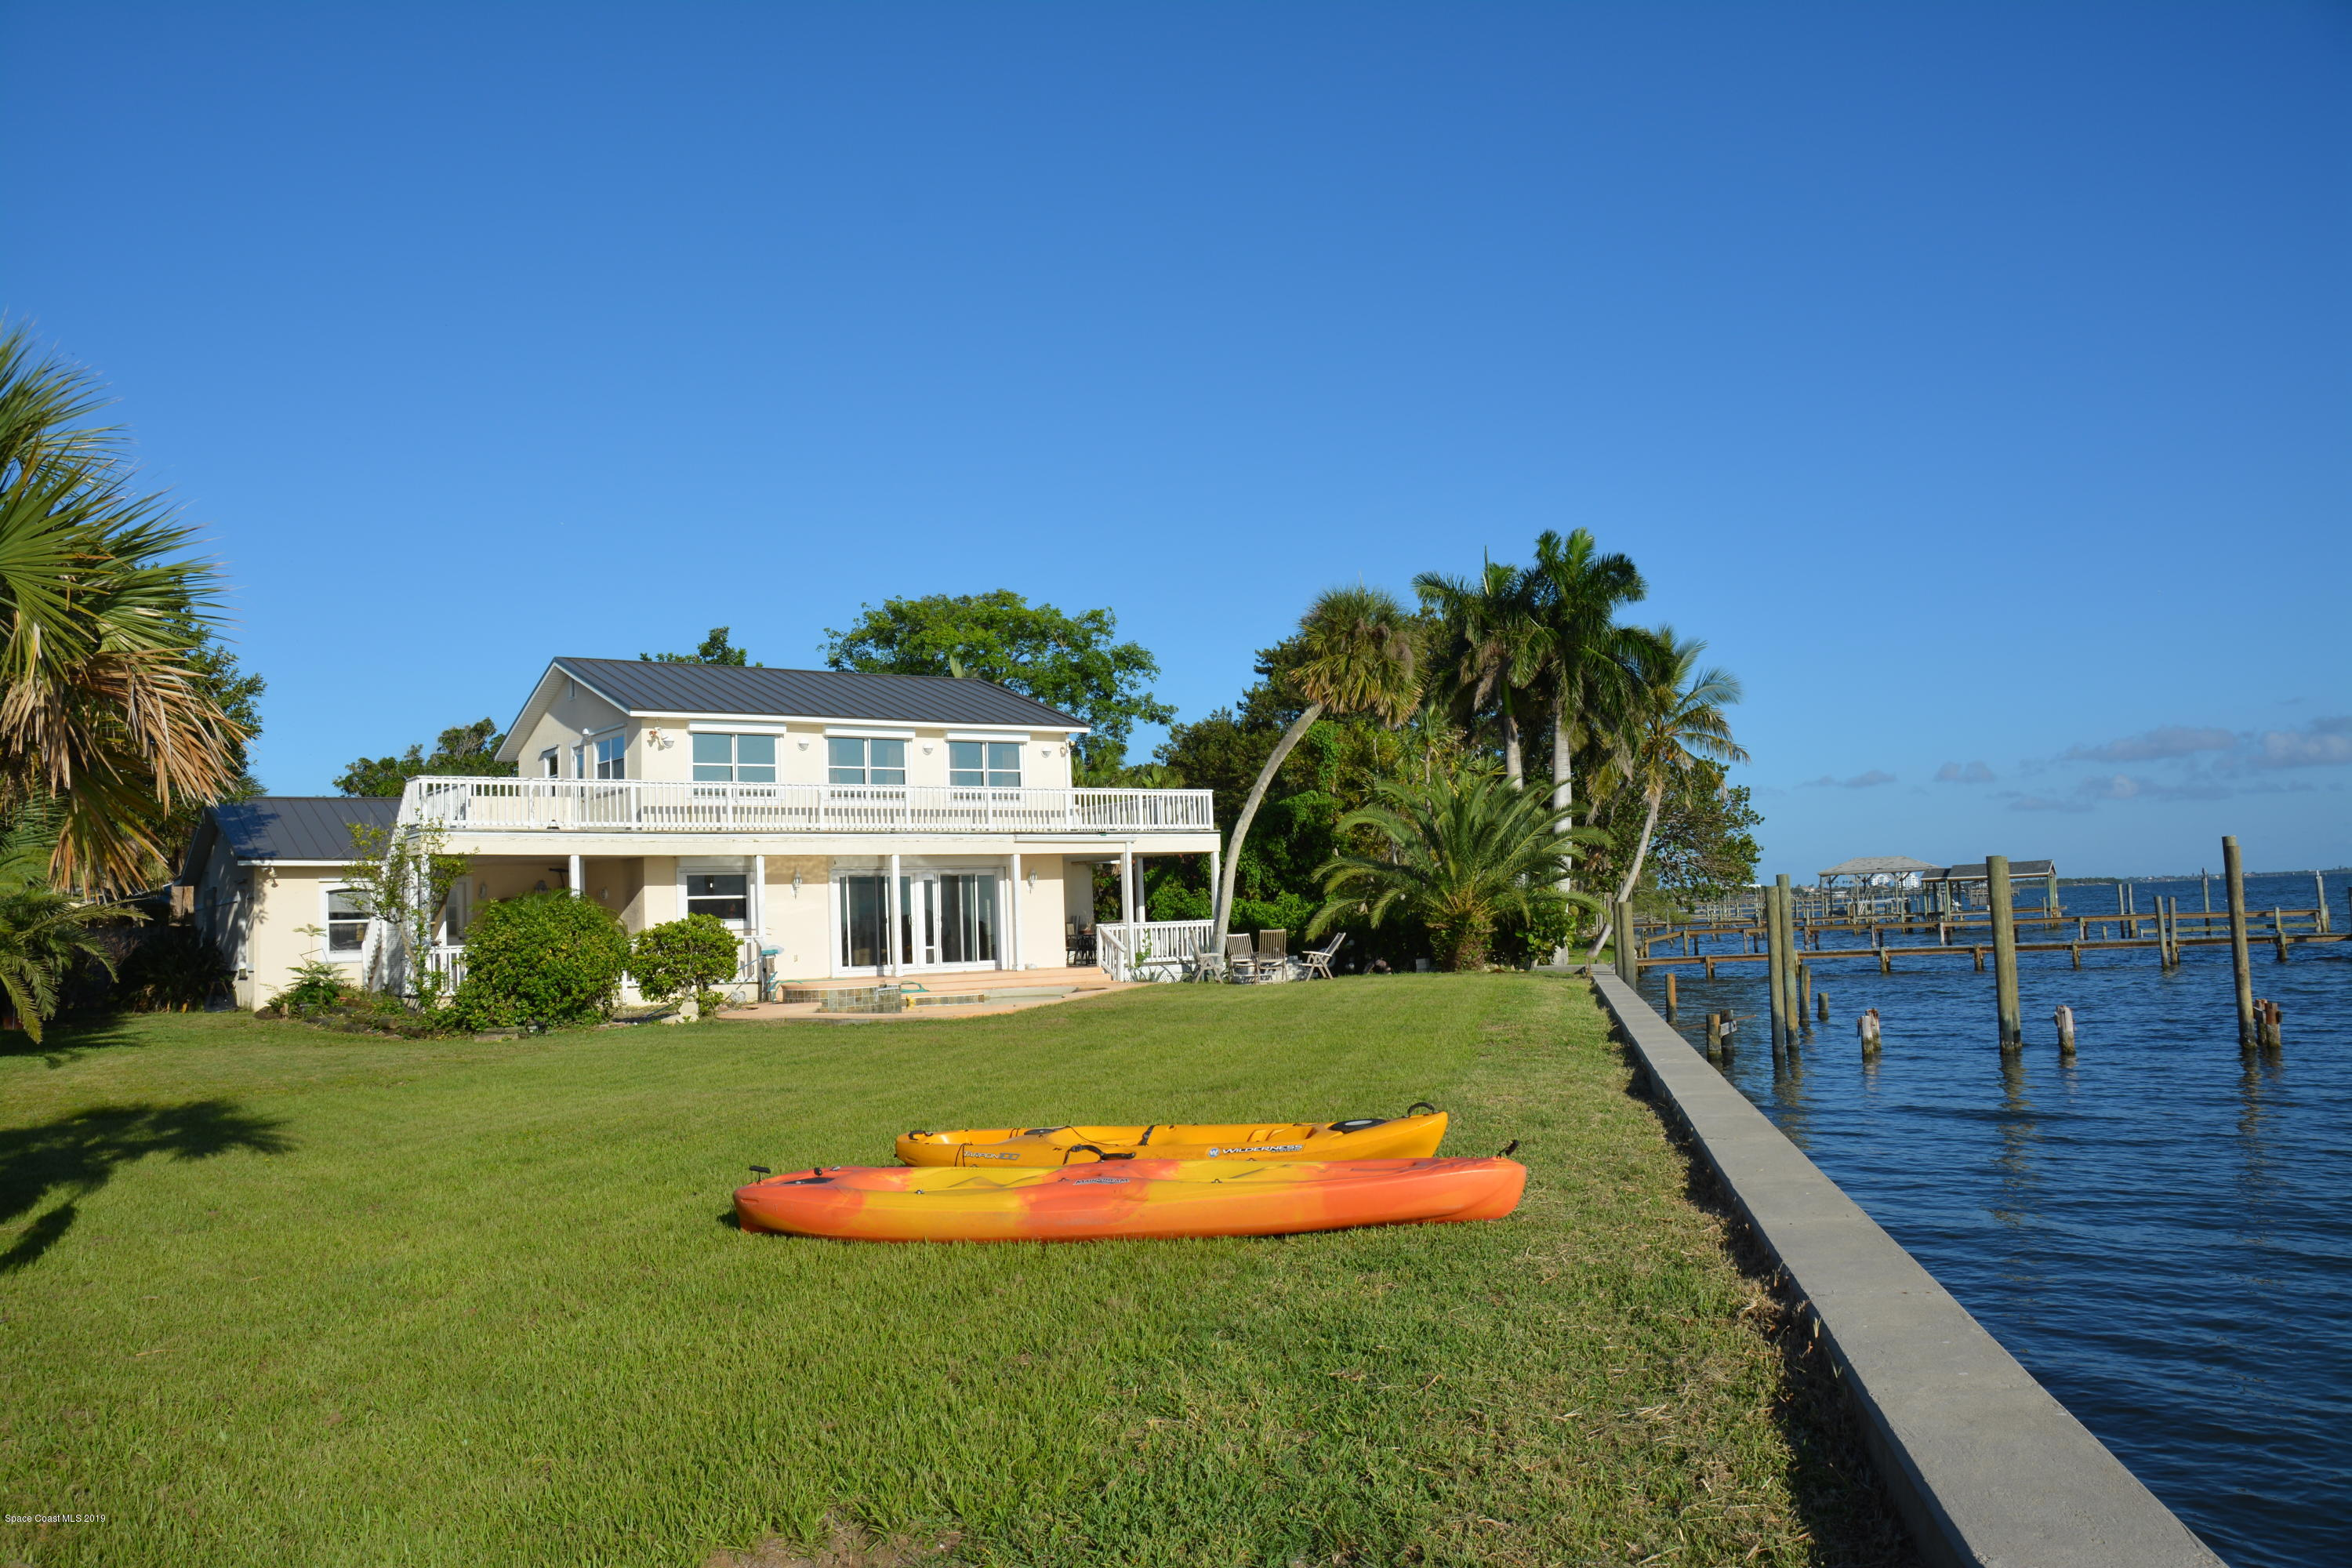 Single Family Homes for Sale at 395 Richards Melbourne Beach, Florida 32951 United States